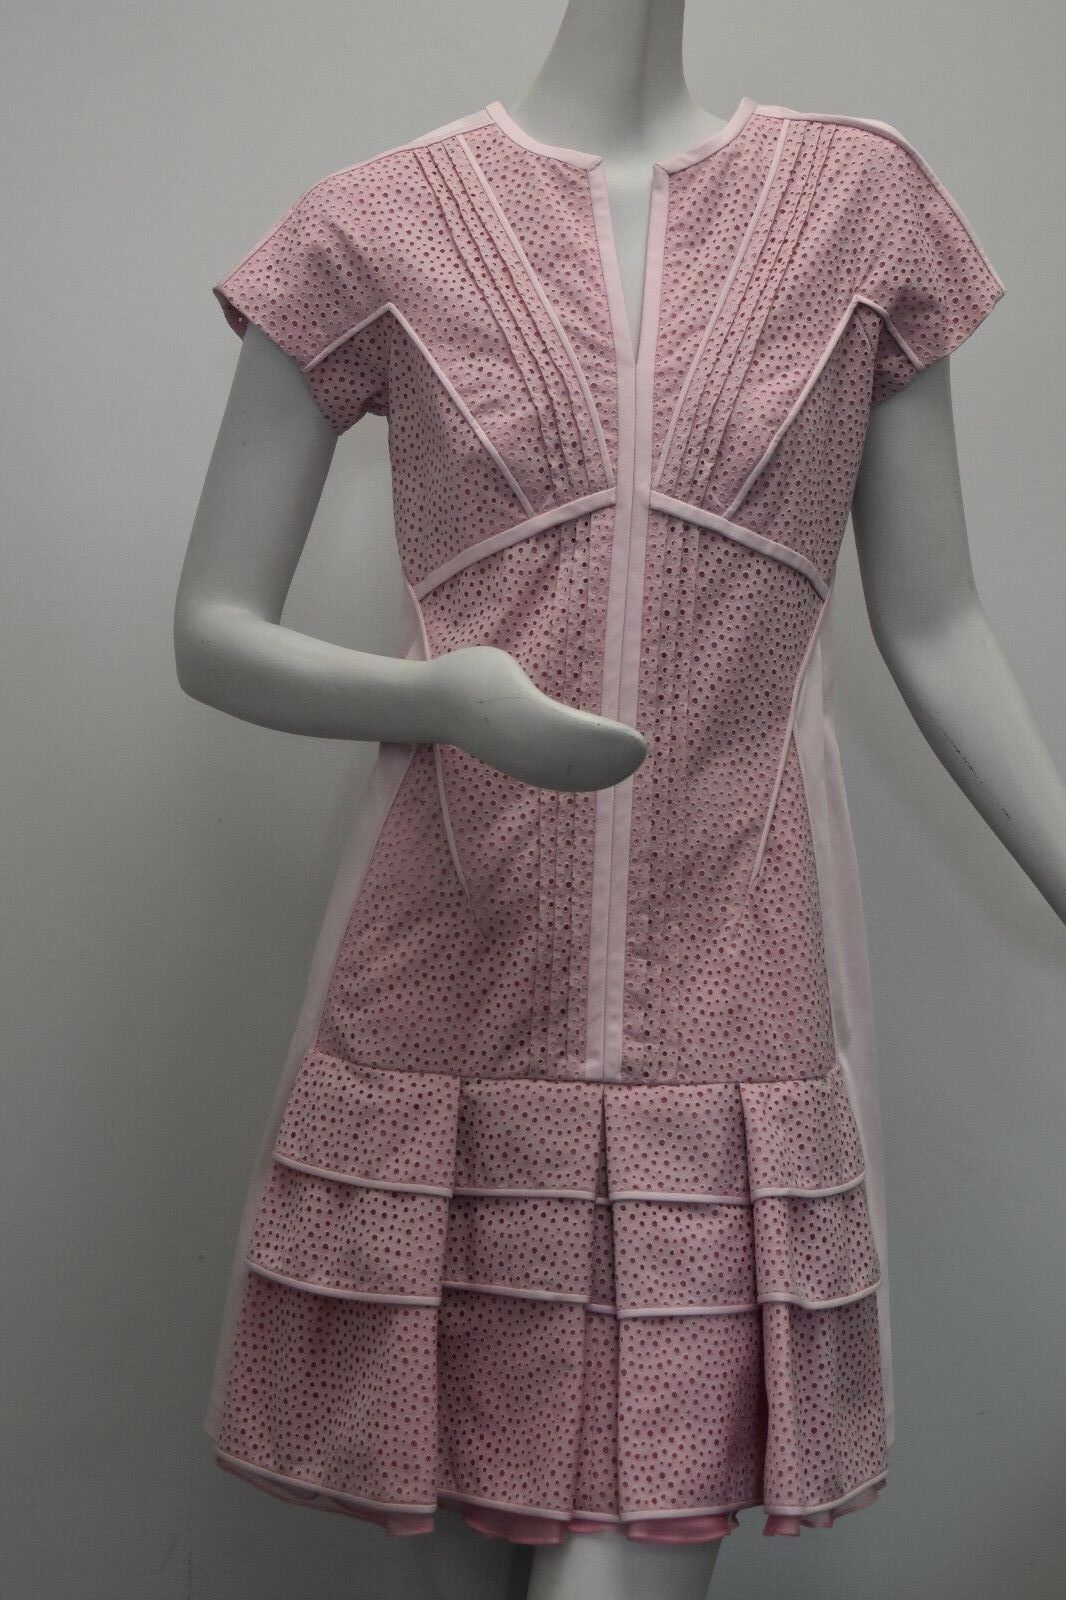 3190 NEW EXQUISITE J. MENDEL Eyelet Pale Pink COTTON Dress Ruffle 8